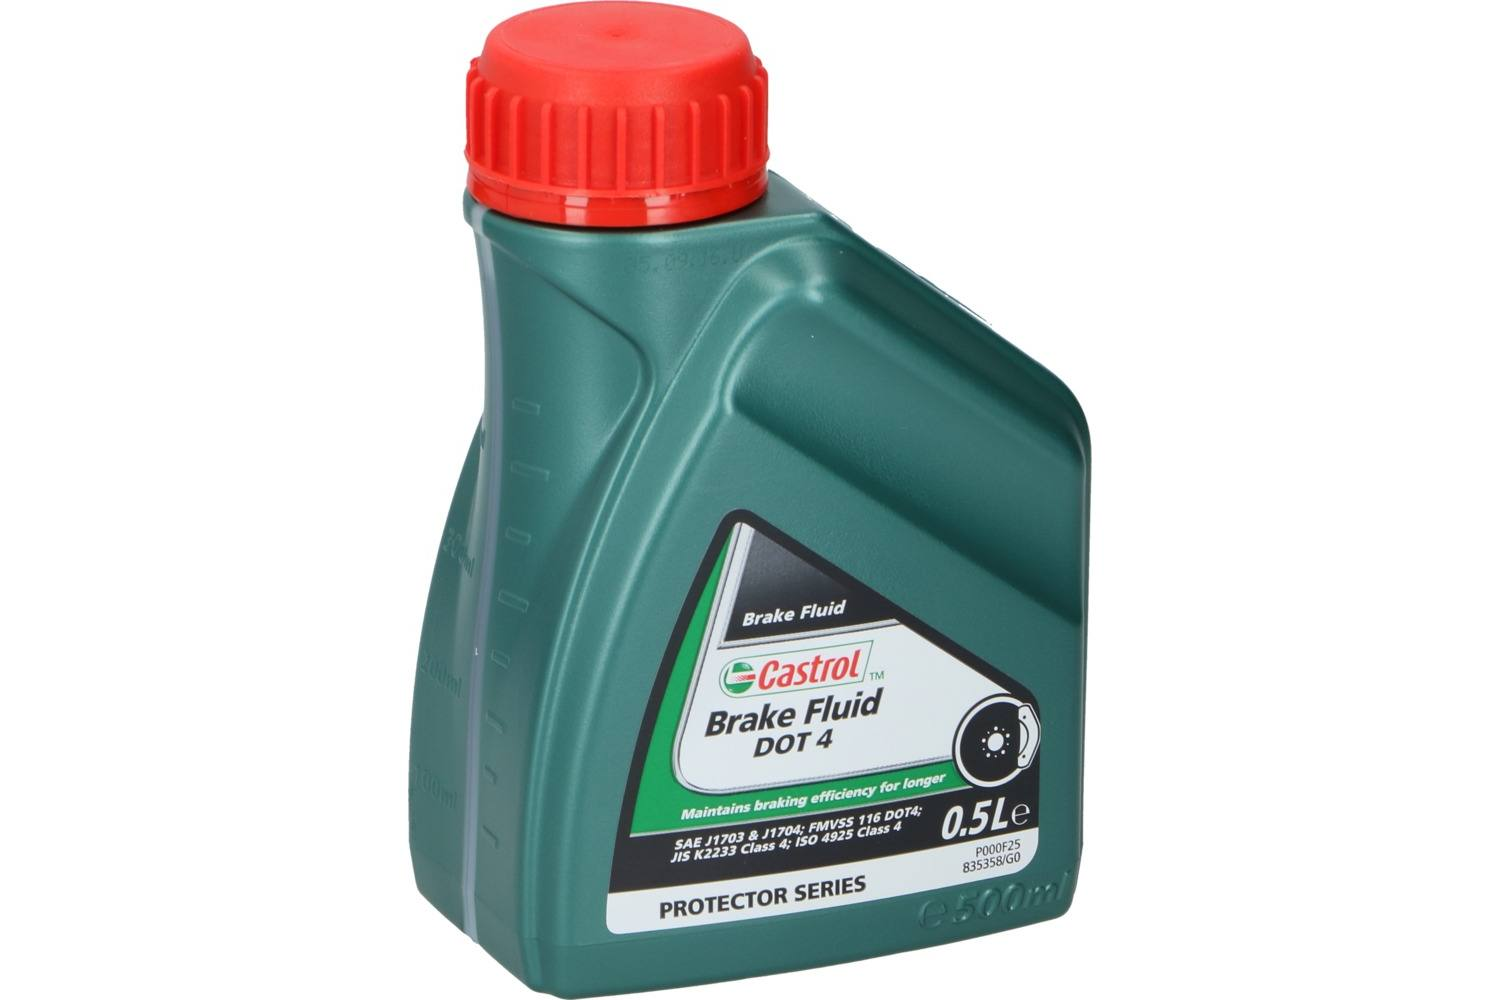 Brake fluid, Castrol, DOT 4, 500ml 1